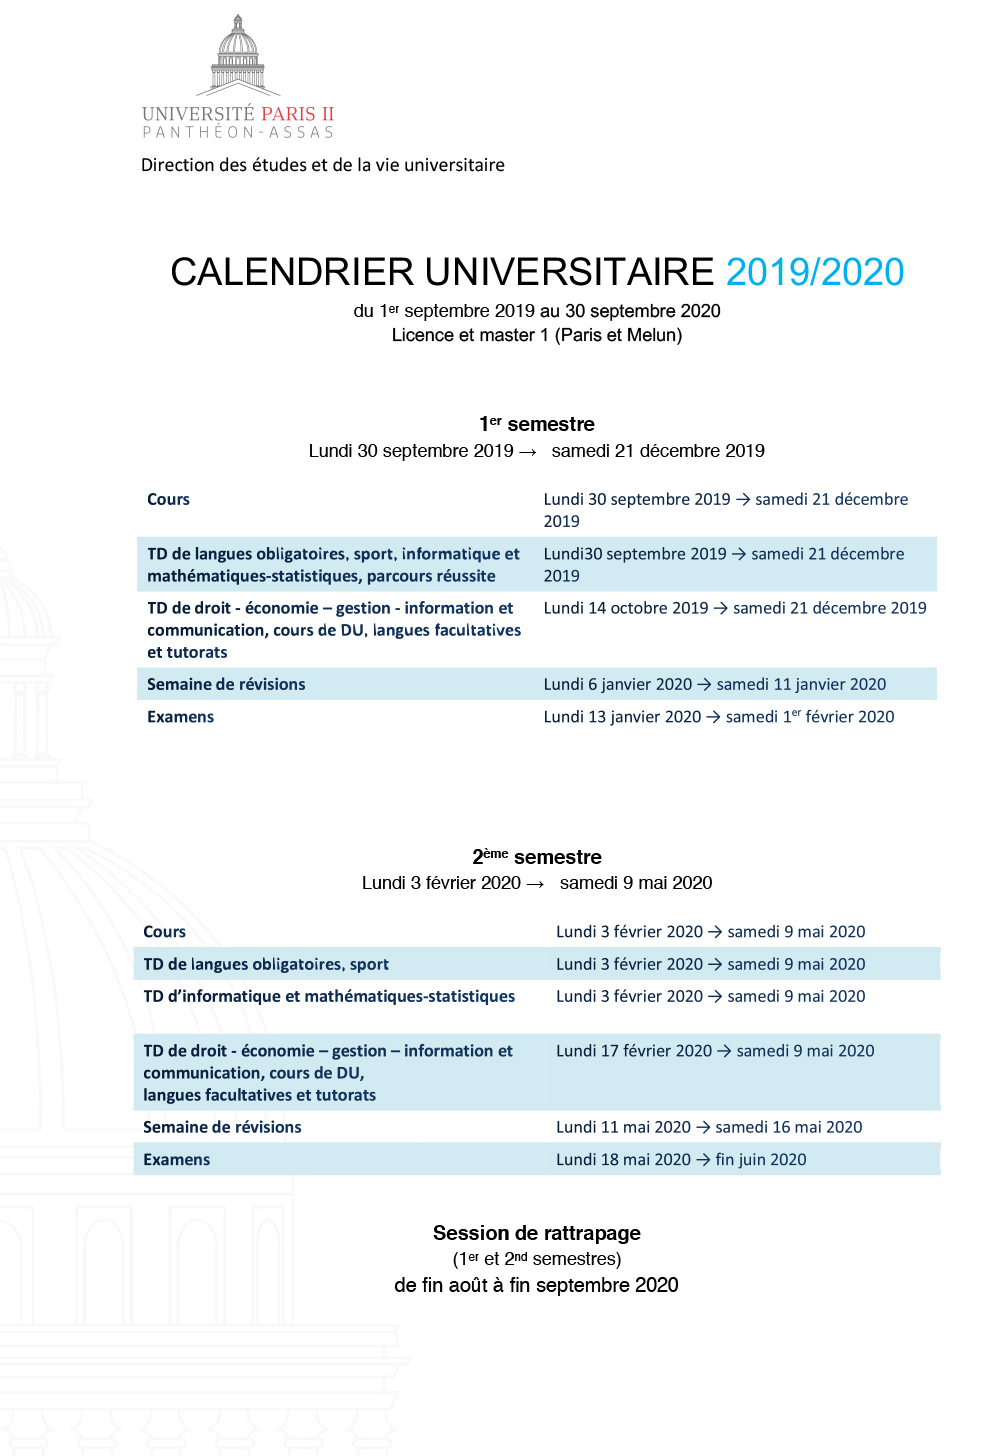 Sciences Po Calendrier Universitaire.Calendrier Universitaire Universite Paris 2 Pantheon Assas